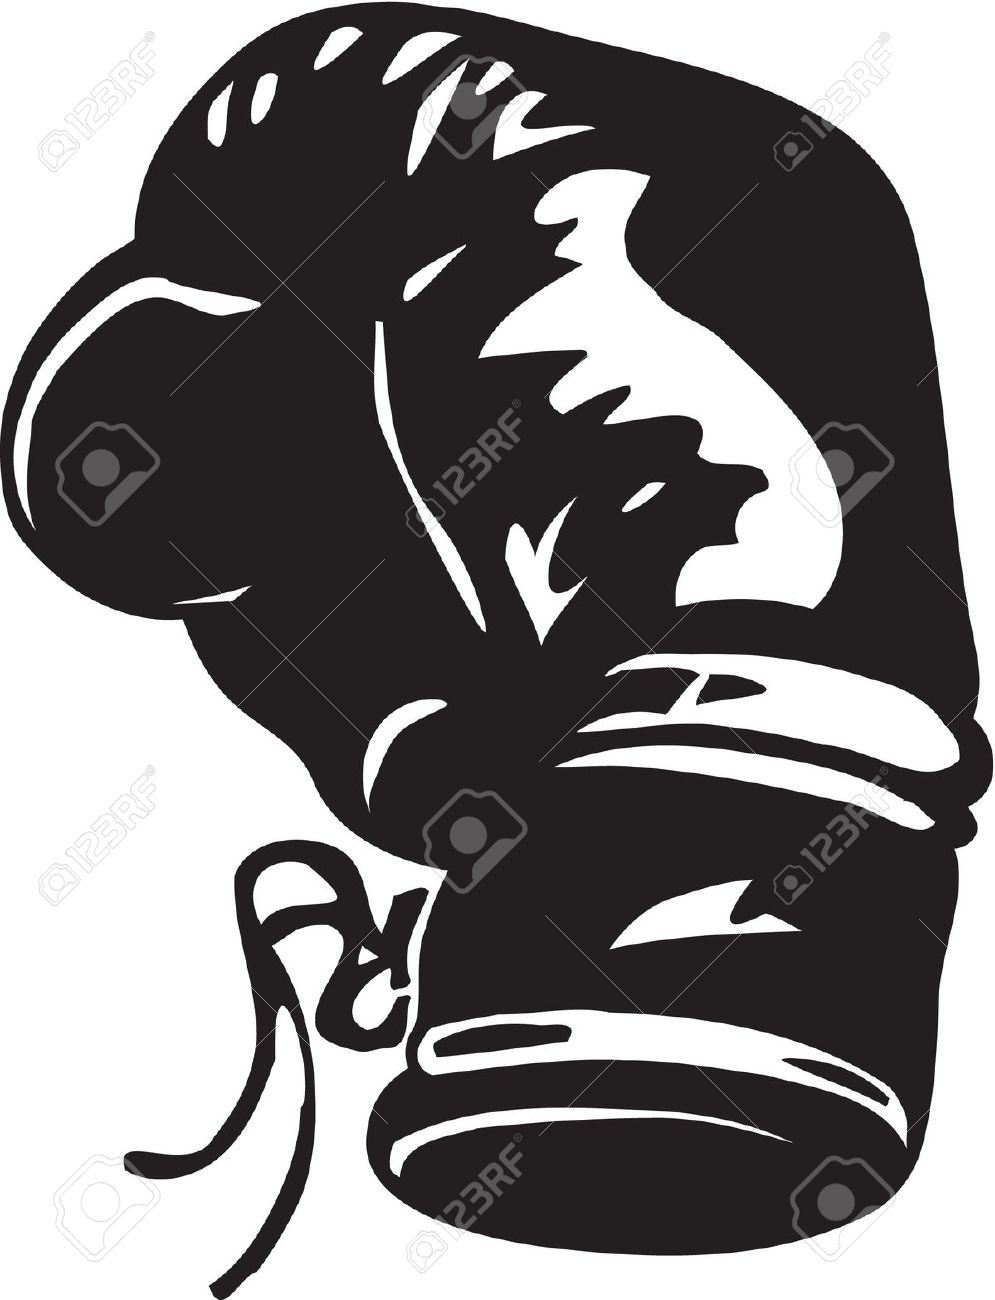 boxing gloves drawing at getdrawings com free for personal use rh getdrawings com Boxing Glove Outline Boxing Glove Outline